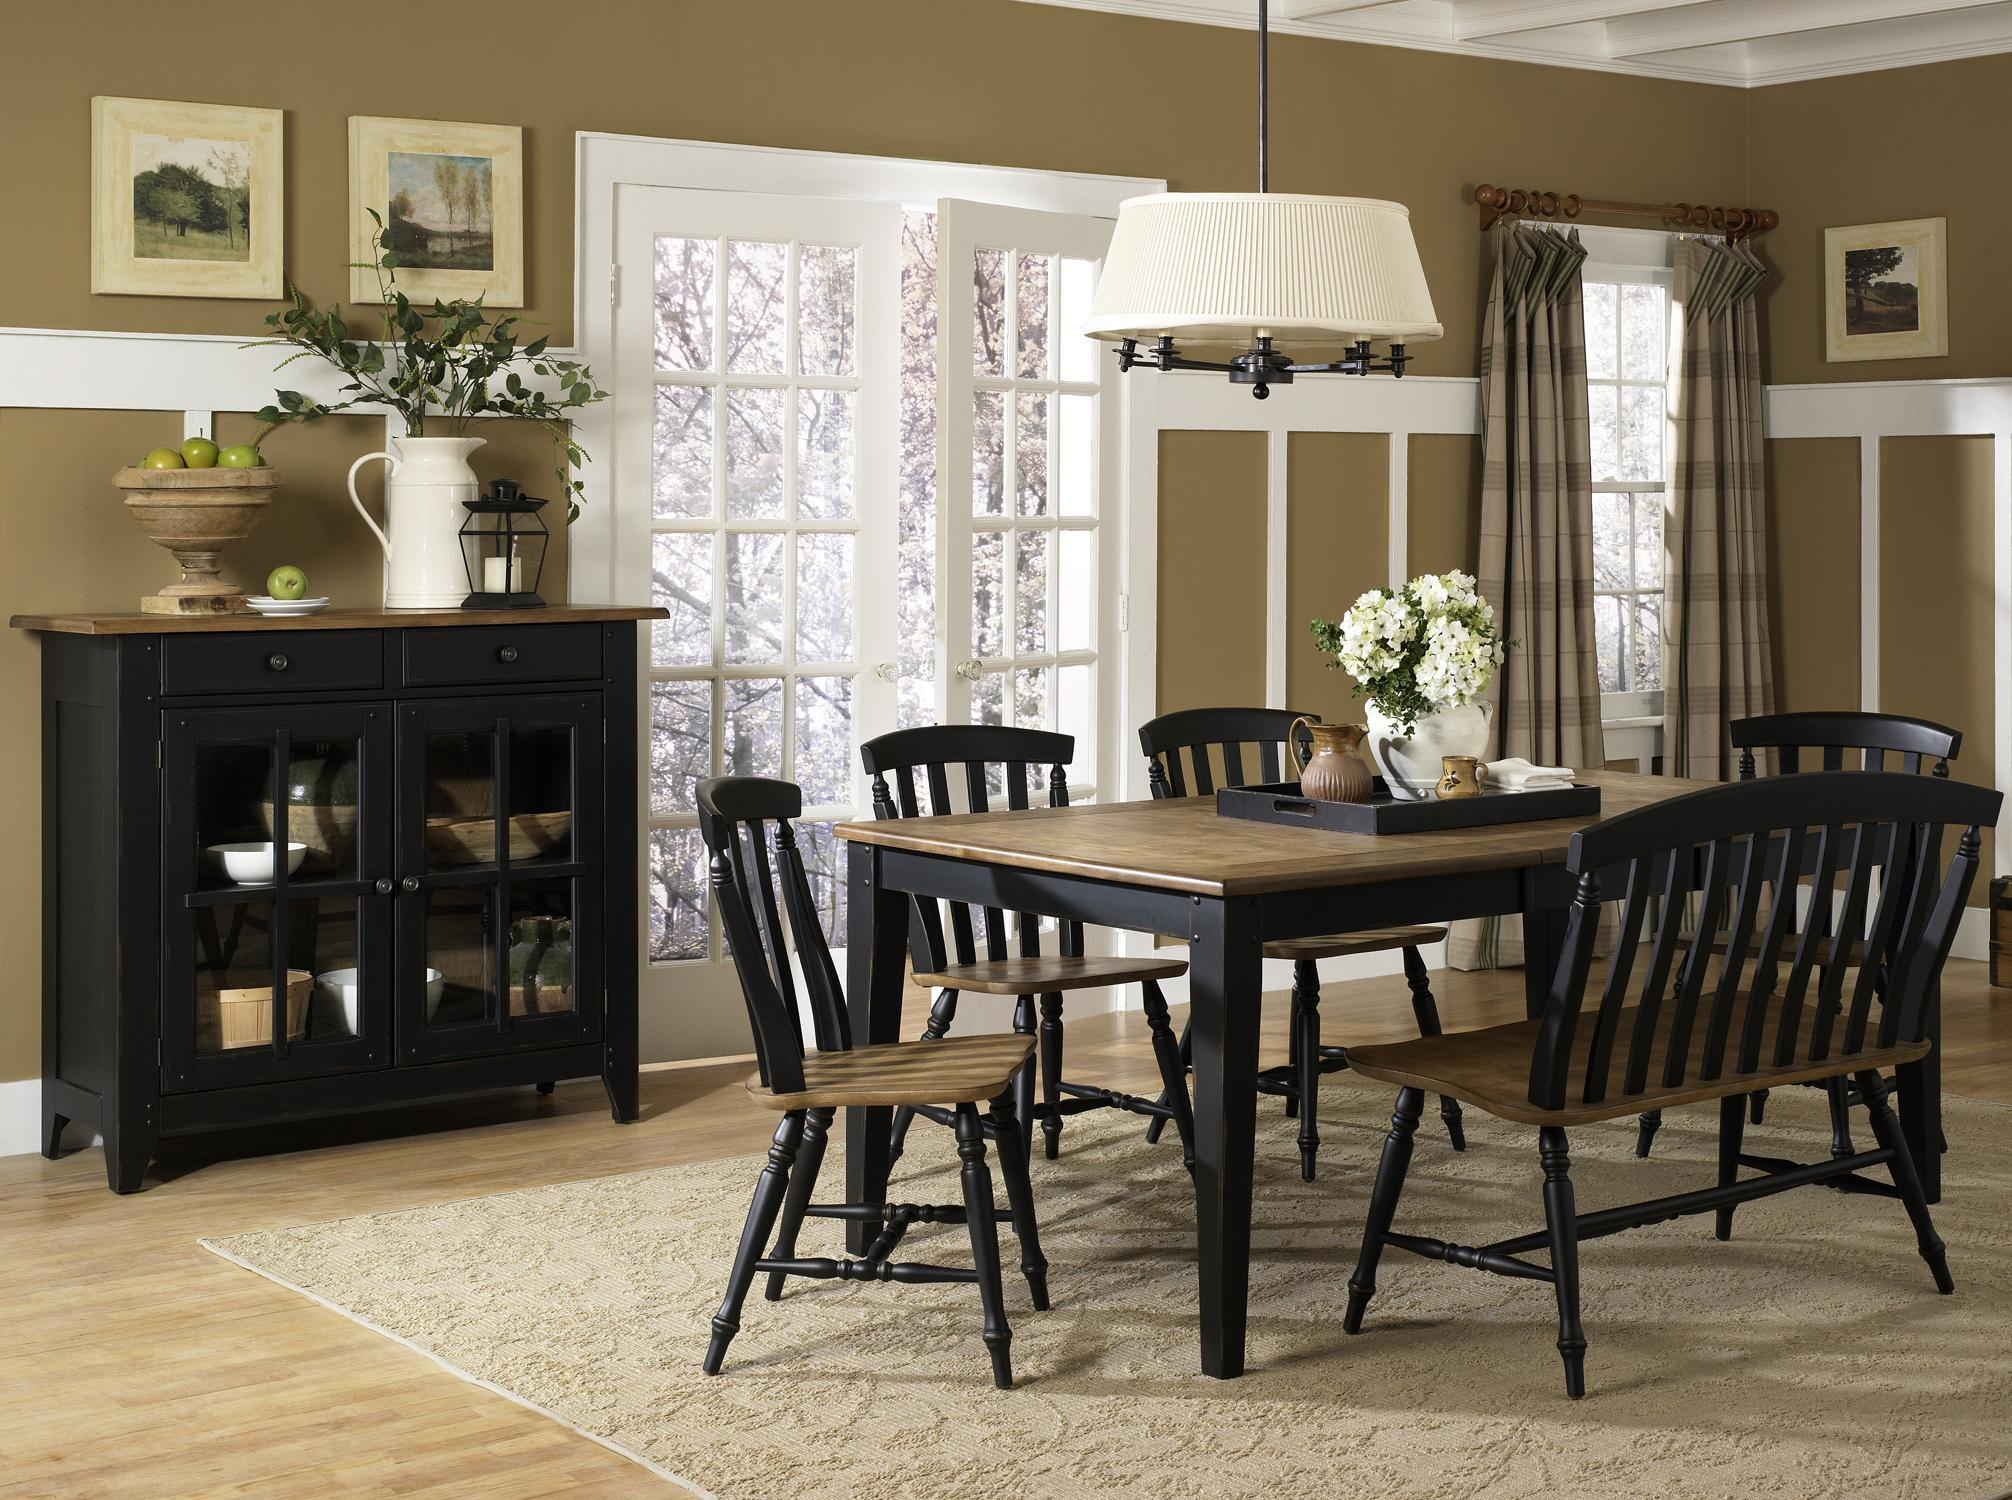 Liberty Furniture Al Fresco II Dining Room Group - Item Number: 641 Dining Room Group 1